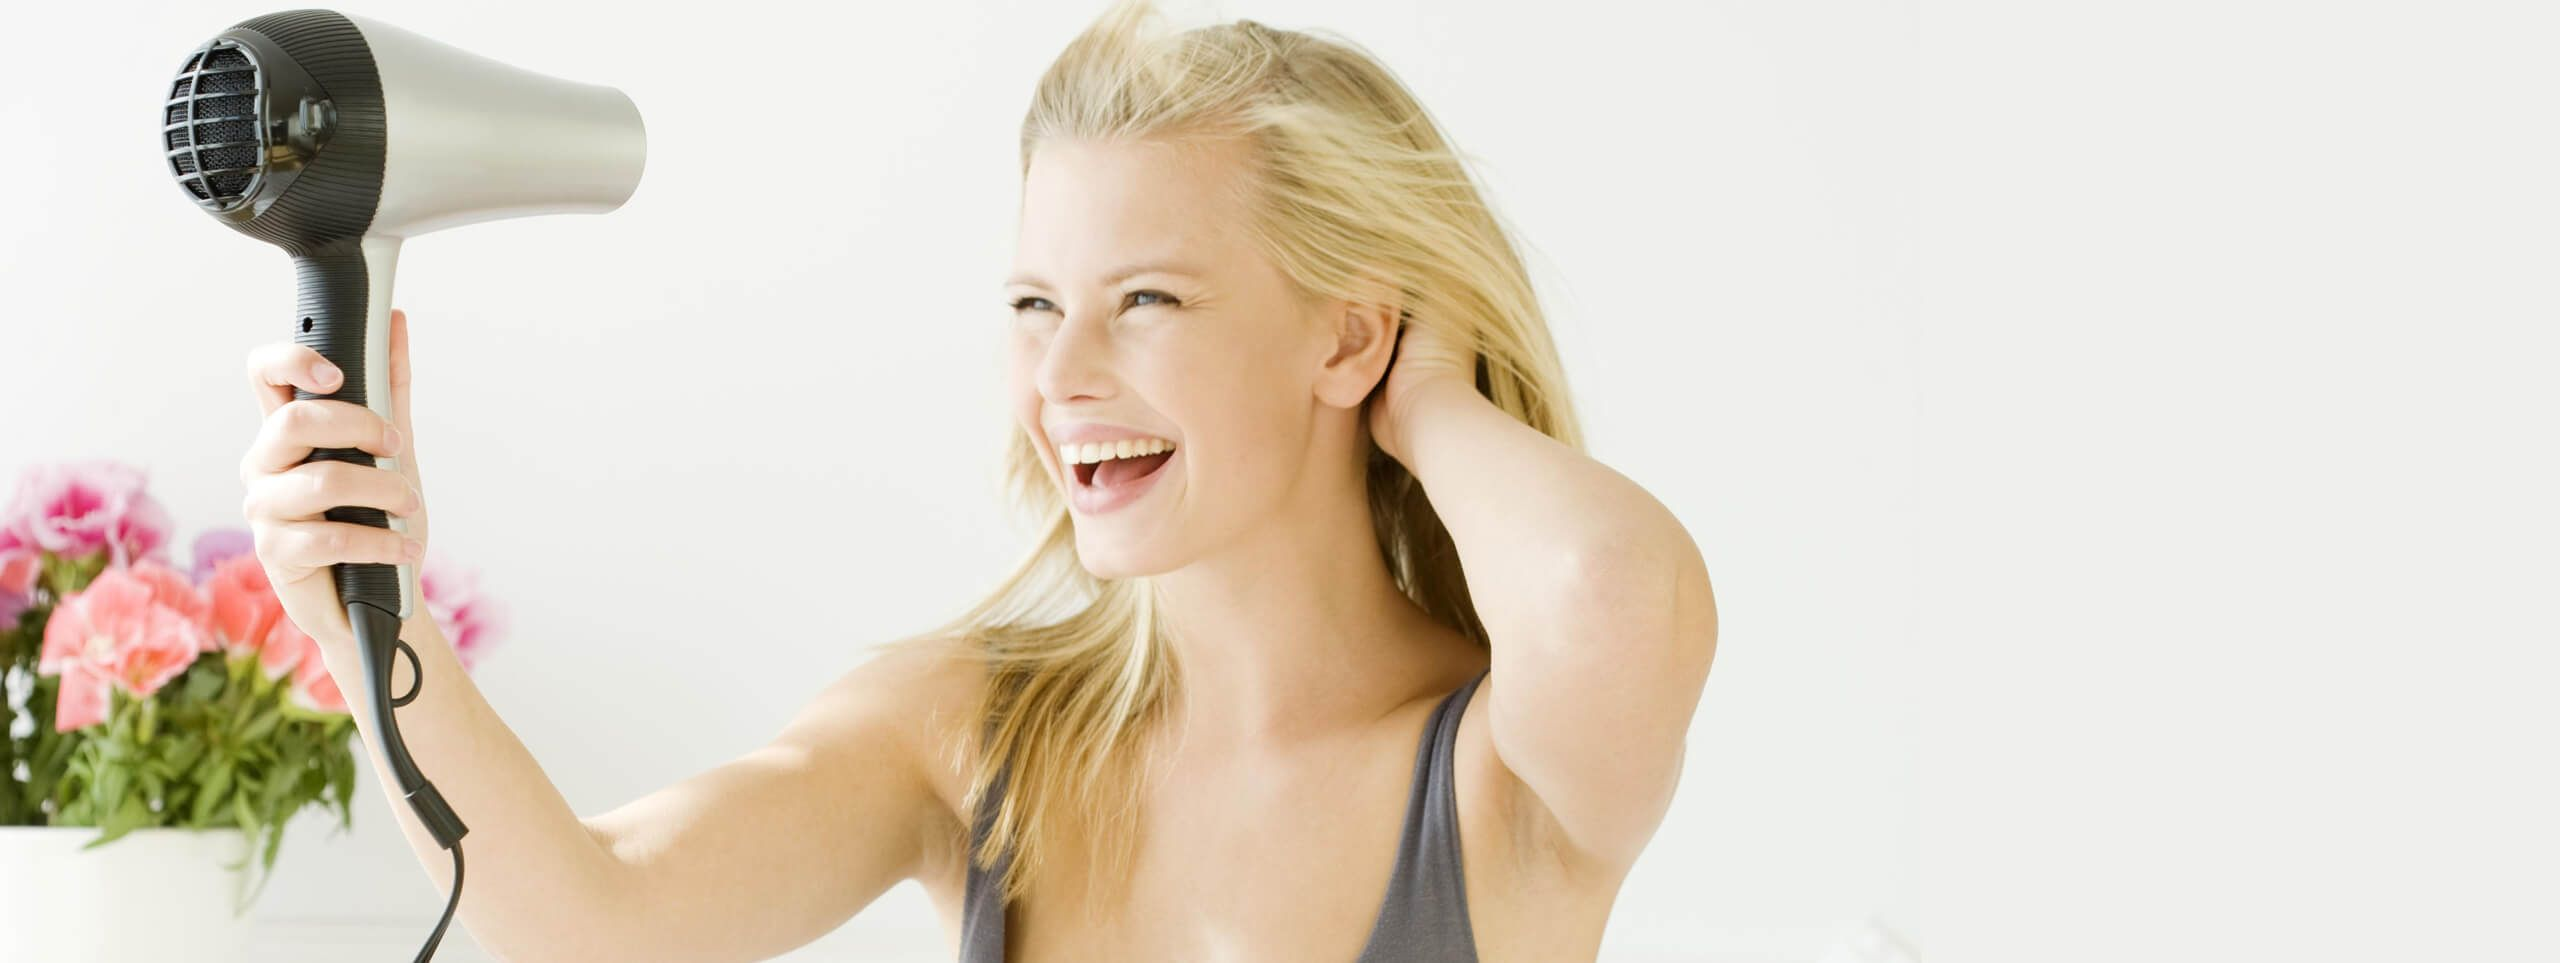 Smiling woman blow-drying her hair, a hairstyle trend for women